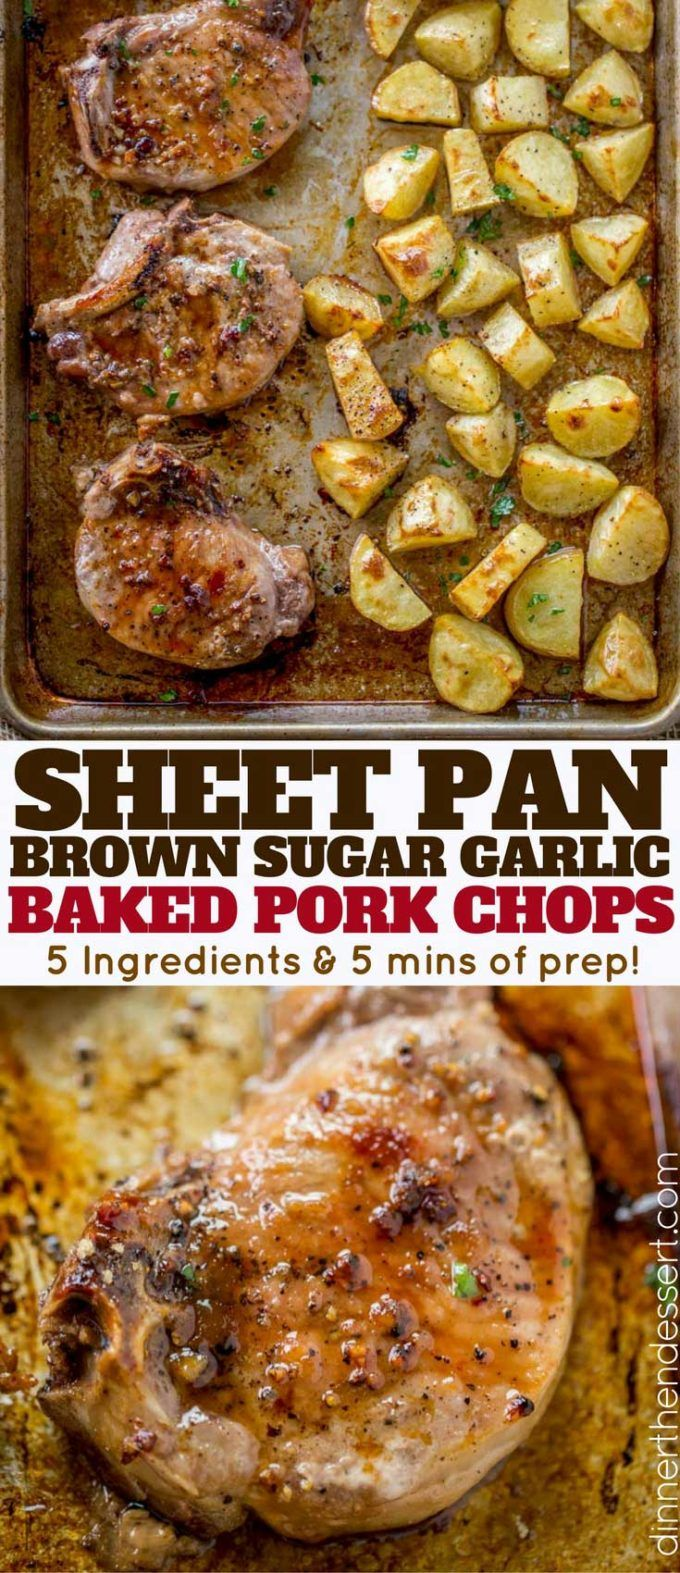 Oven Baked Pork Chops covered in brown sugar and garlic made on a sheet pan with yukon potatoes. One pan, almost no cleanup and the whole family will love them.